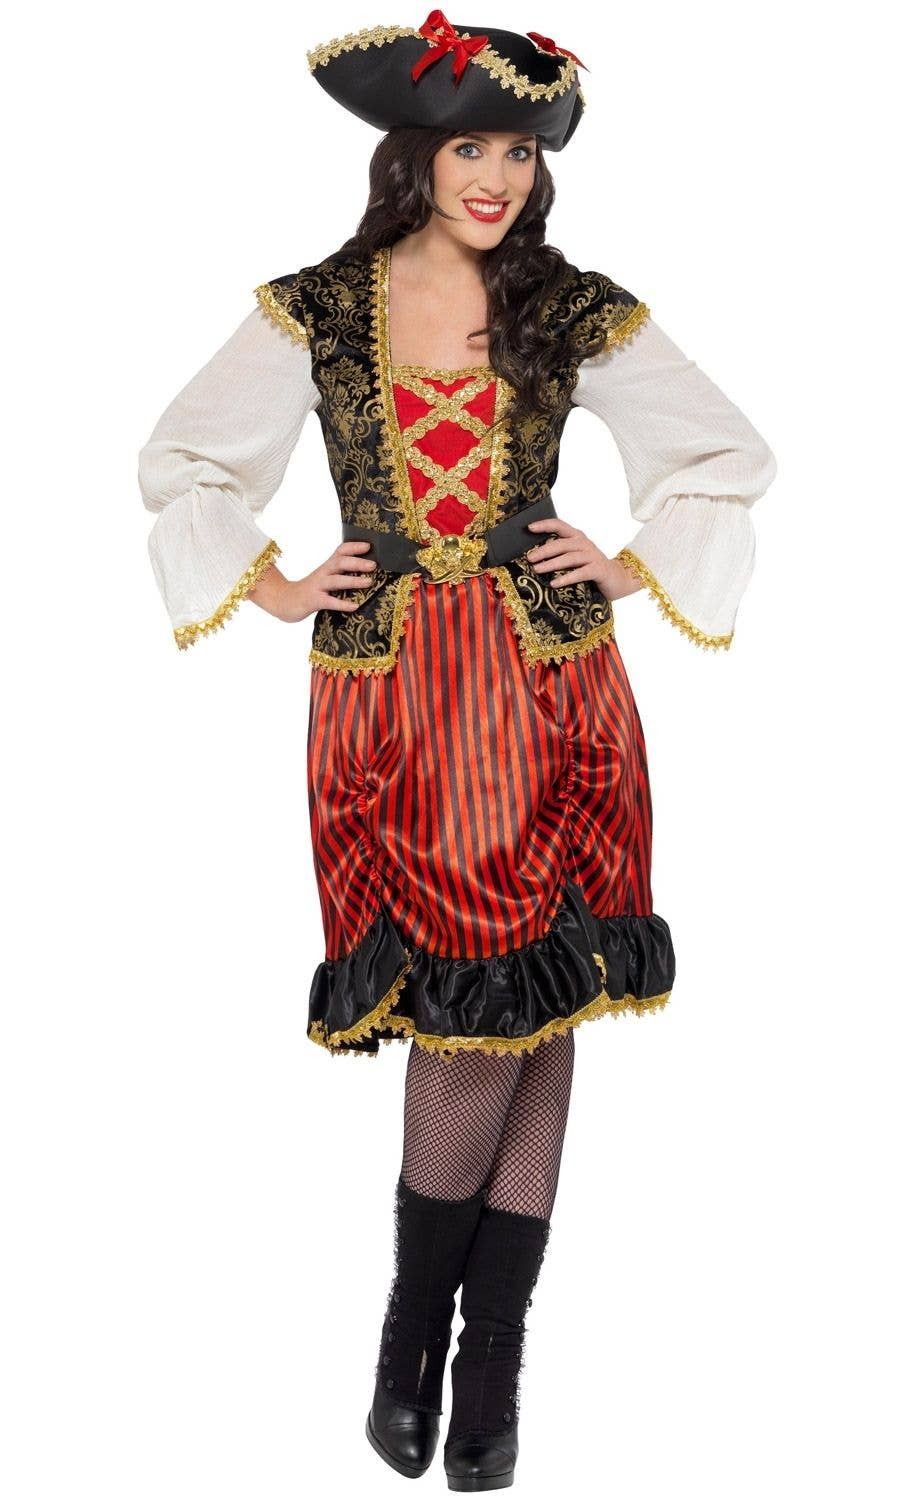 b4cd4697acbc0 Curves Pirate Lady Women s Plus Size Fancy Dress Costume Front View 2